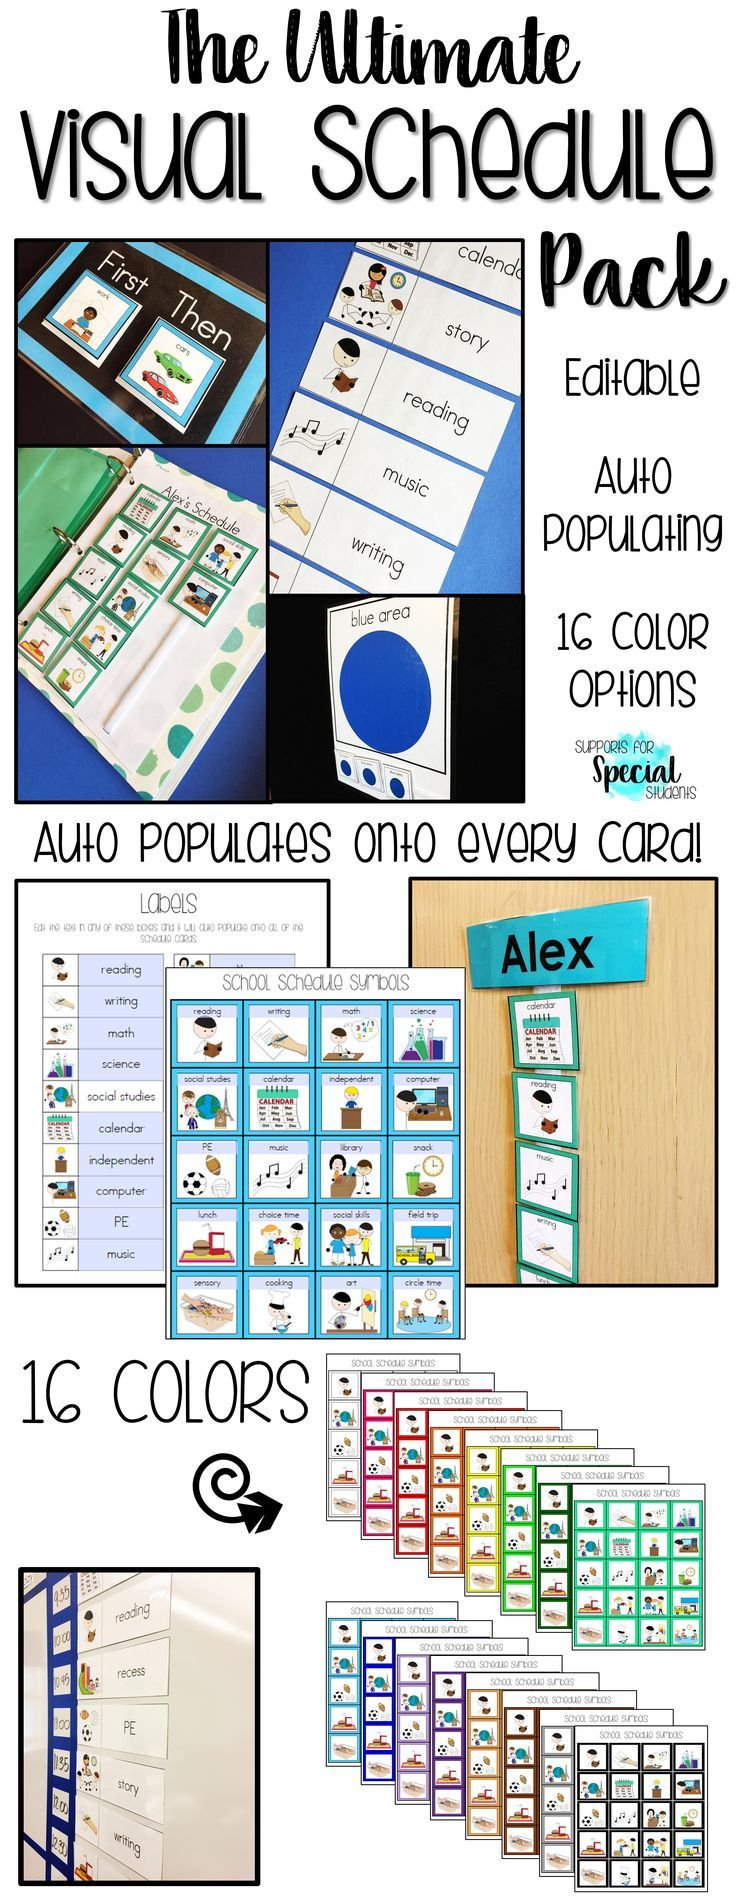 This HUGE pack contains over 700 pages of editable schedule cards! There are 16 color options and 4 different sizes. Two files are included in this pack. The auto-populating PDF saves you time and energy. Change the title on one card and it will auto-popu